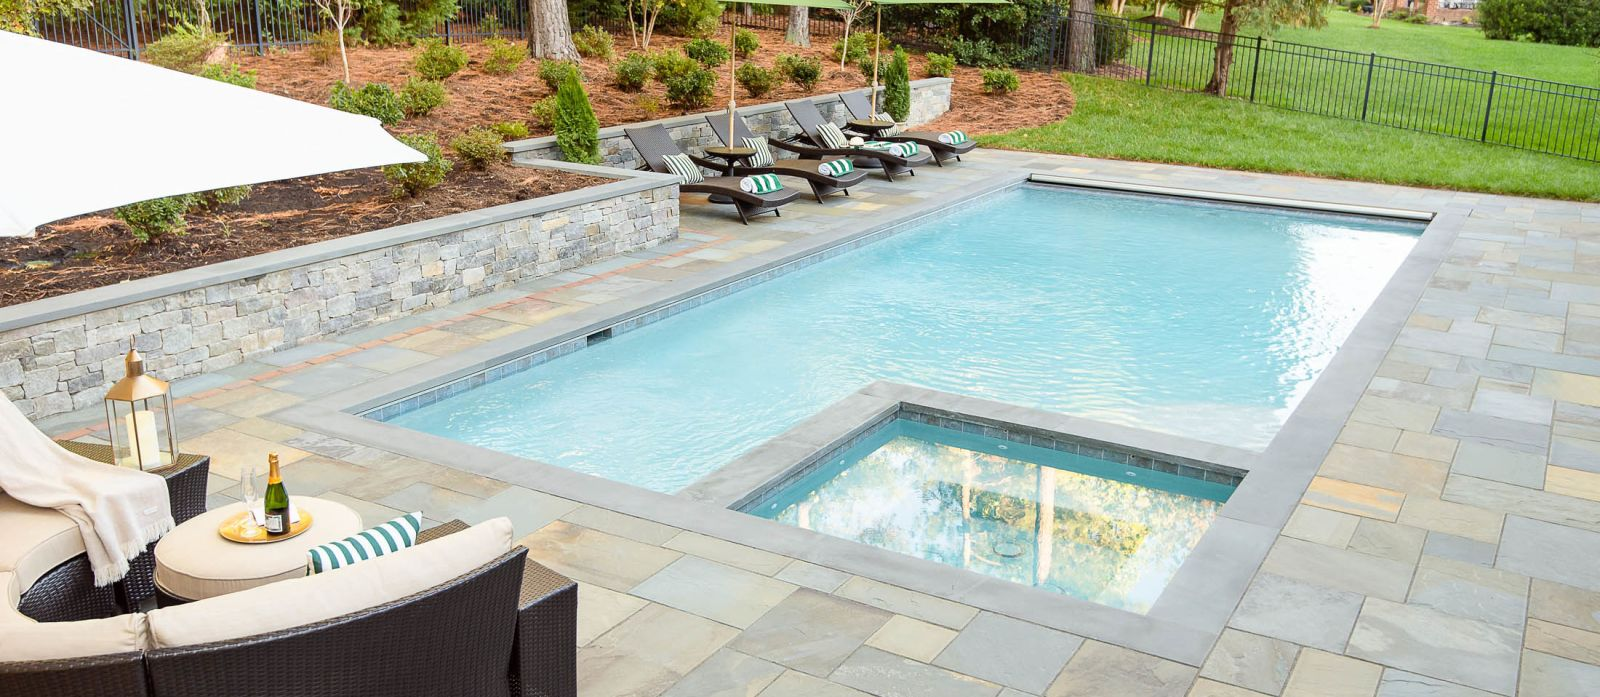 Newly installed backyard pool and hot tub with retaining wall